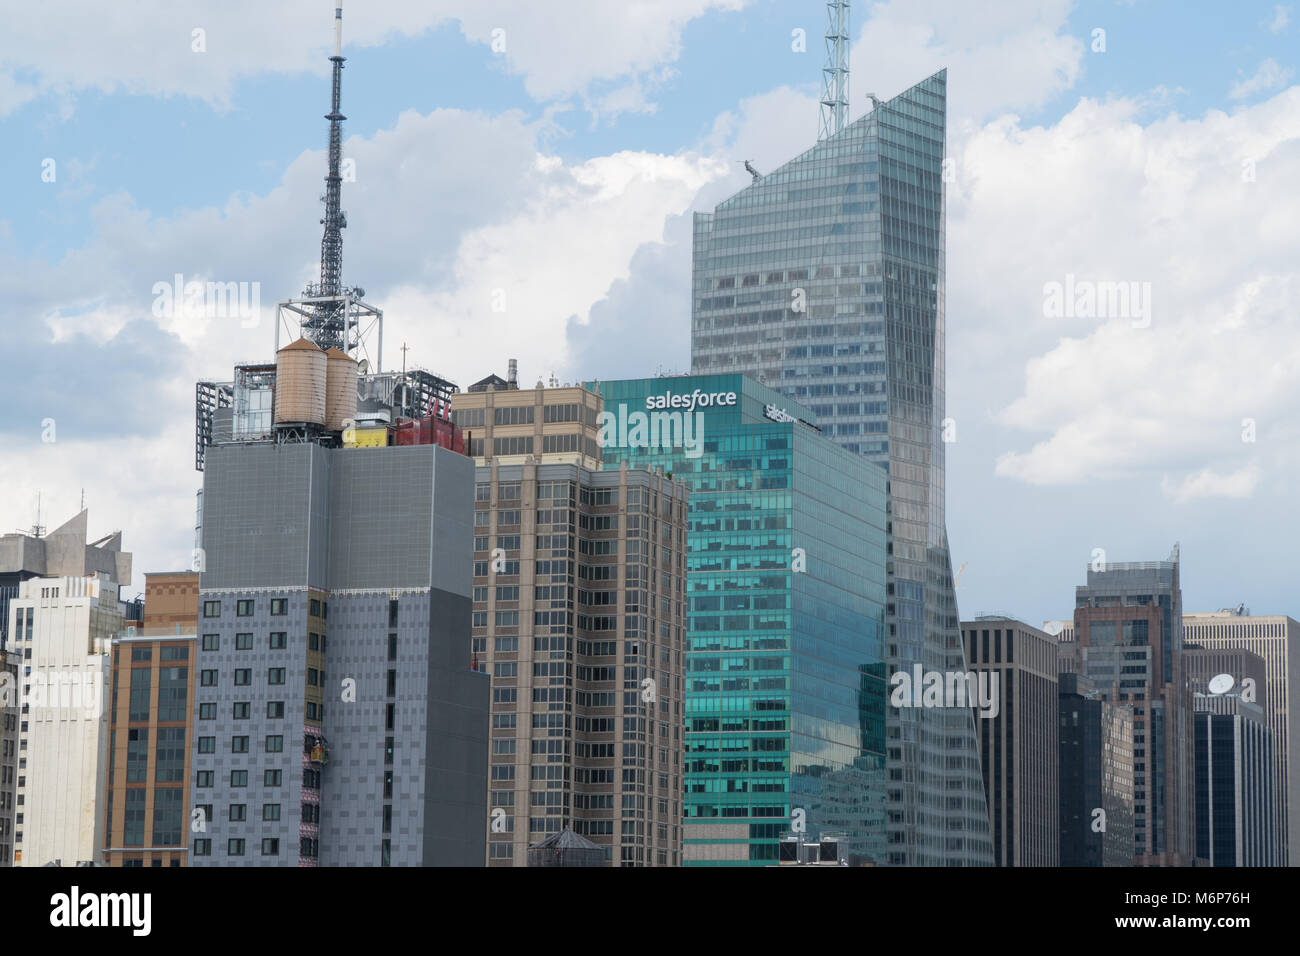 New York City, Circa 2017: Salesforce building in midtown Manhattan skyline adjacent to Bank of America Tower. Former - Stock Image